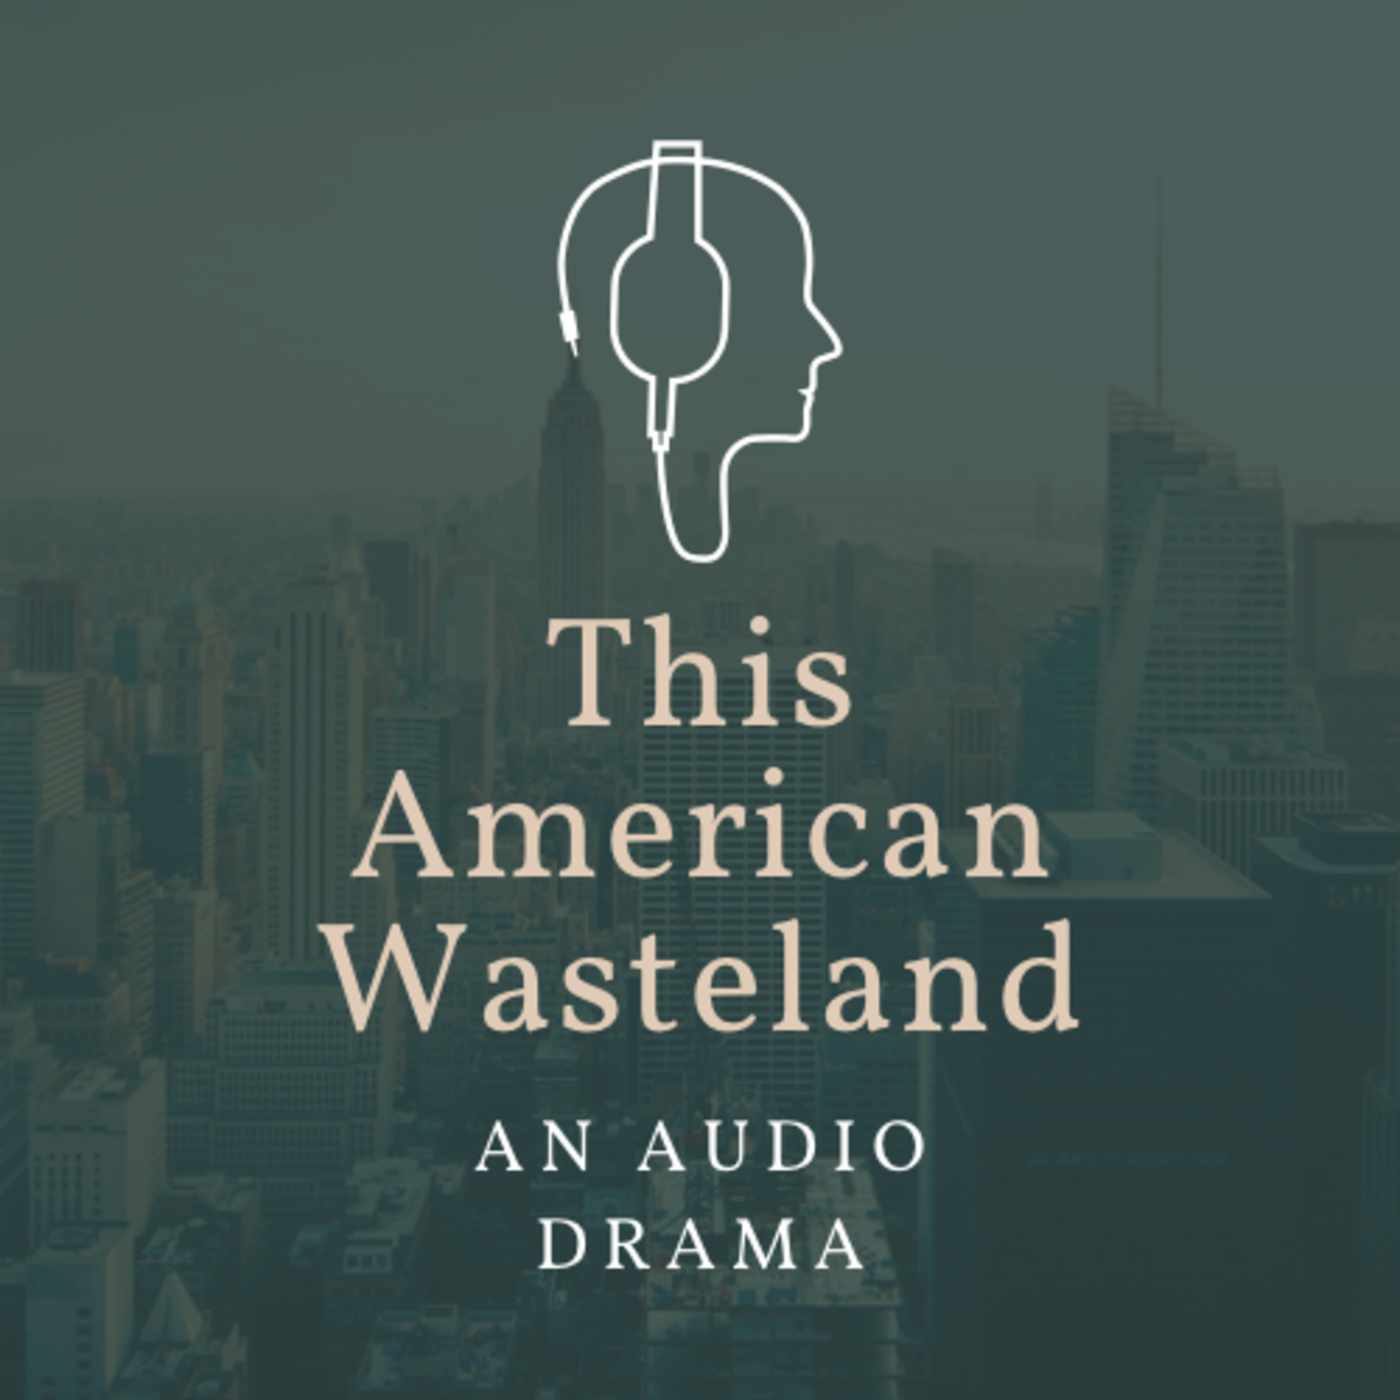 This American Wasteland: an audio drama